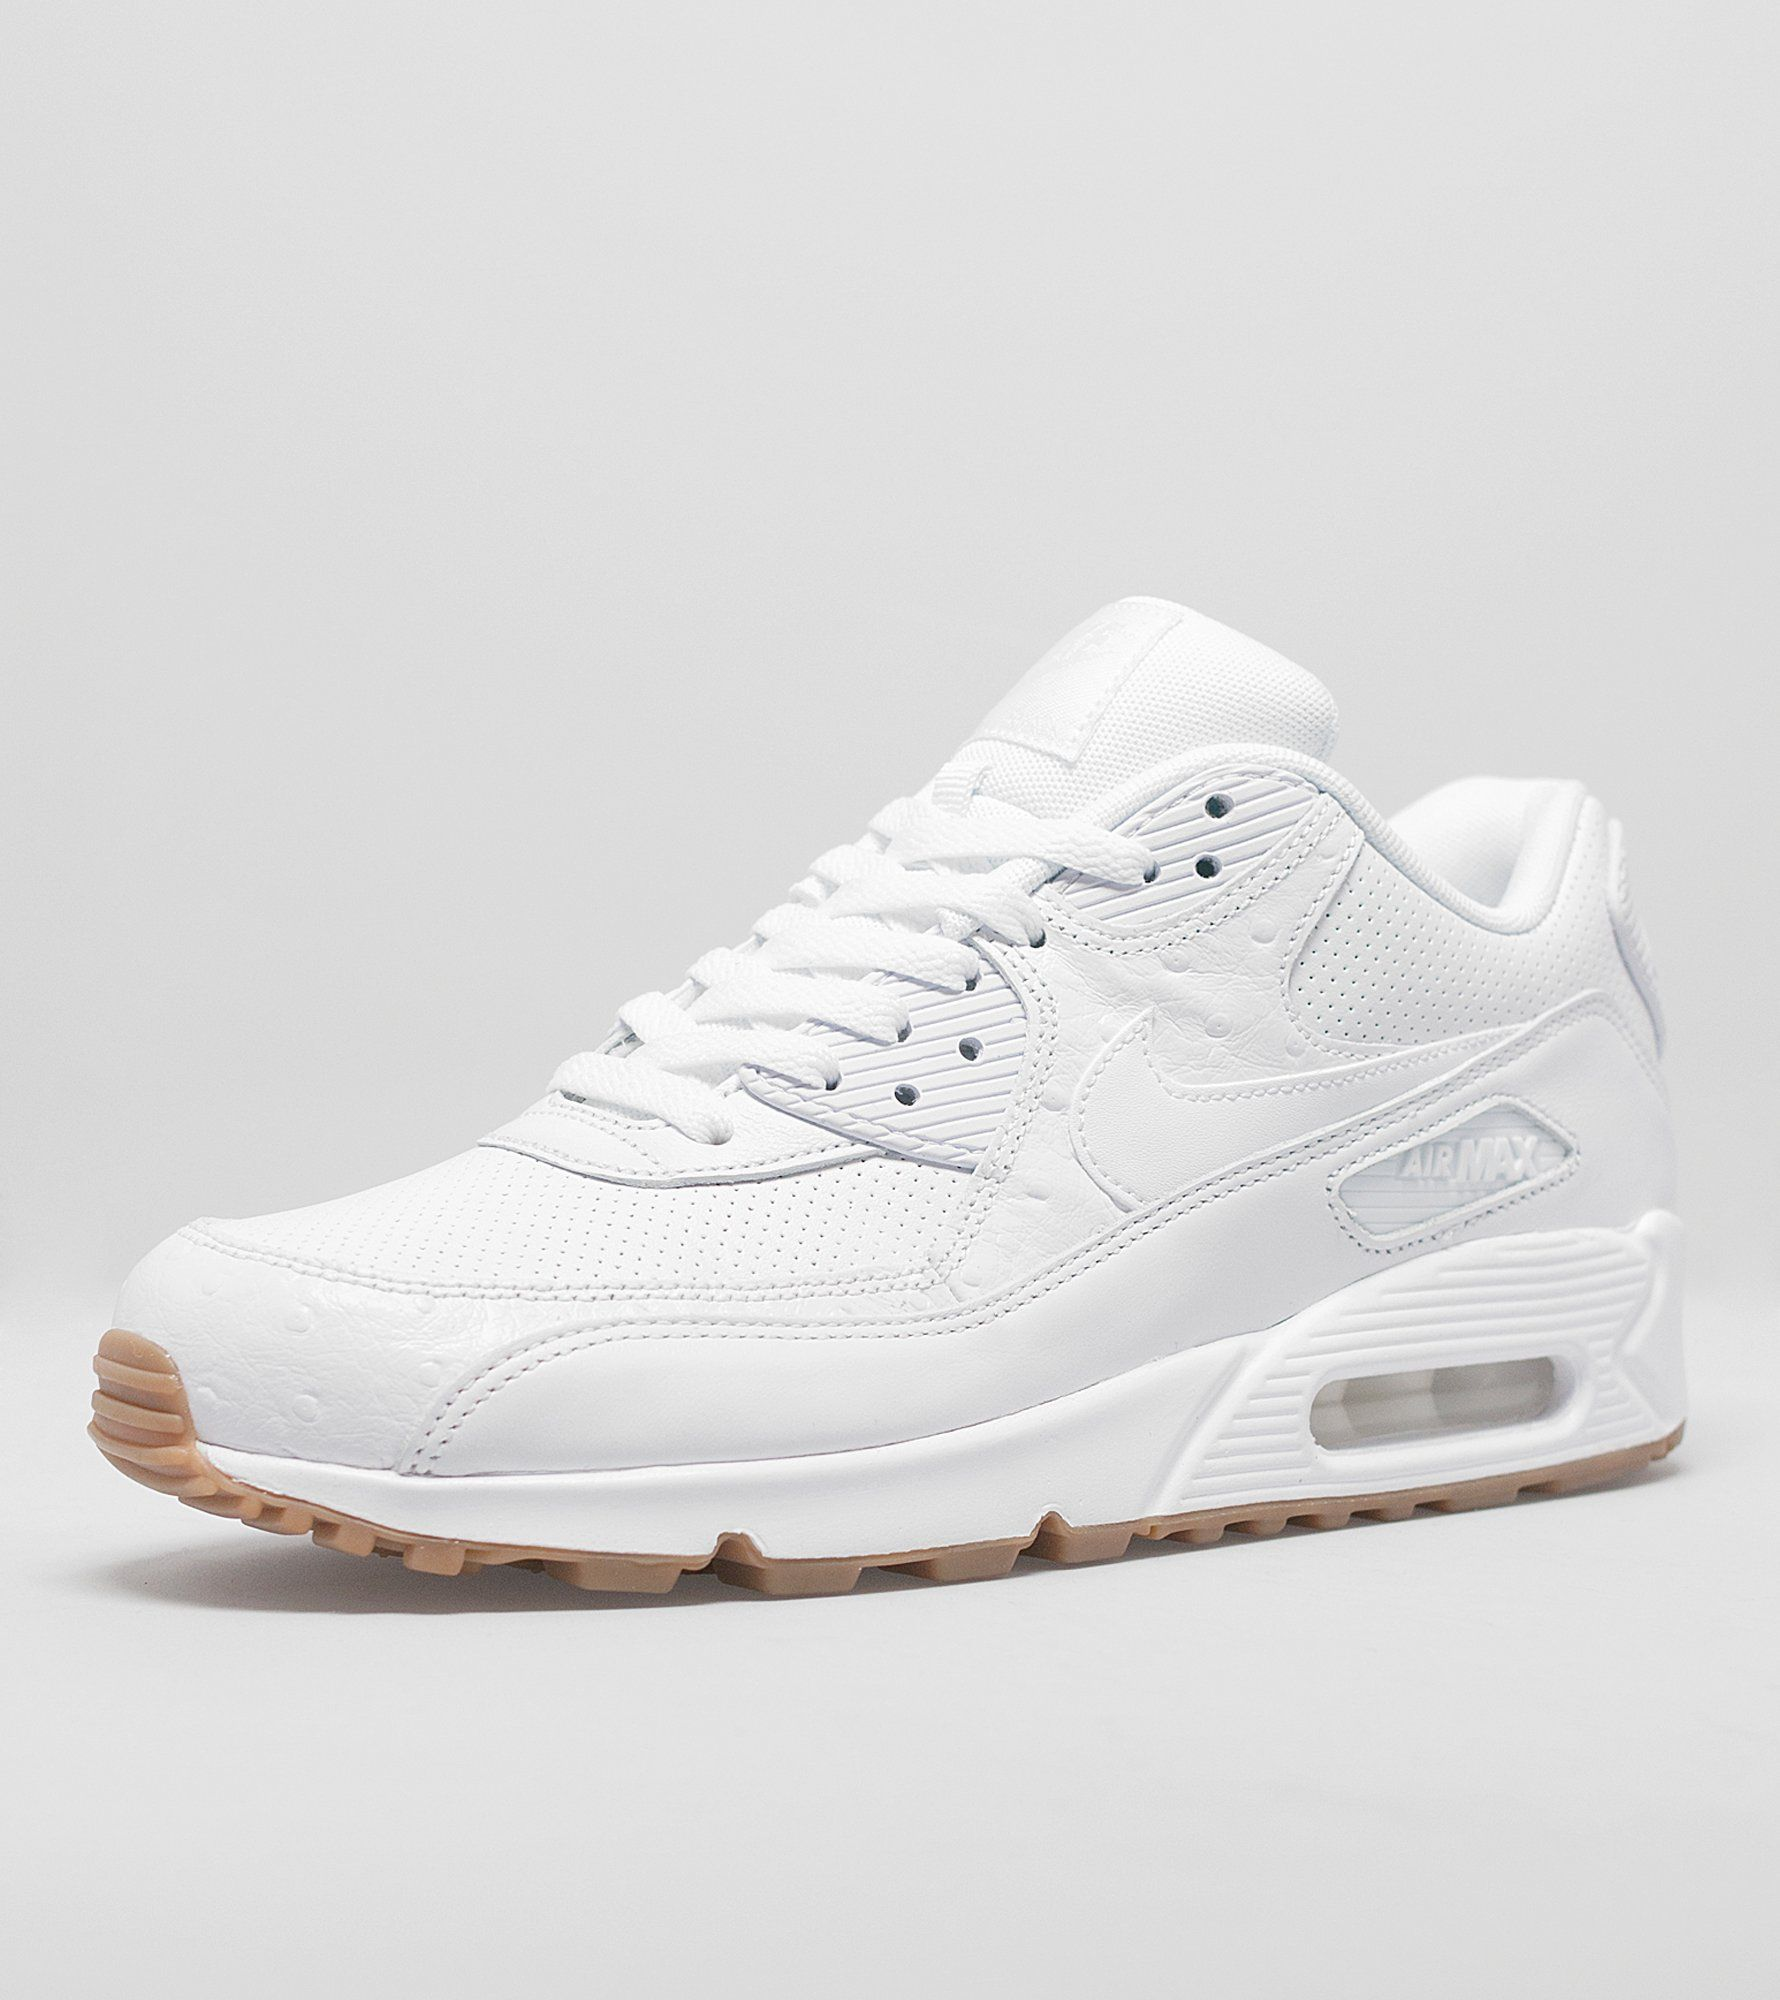 separation shoes f3f0c bedc6 Nike Air Max 90 White Gum Pack - find out more on our site. Find the  freshest in trainers and clothing online now.